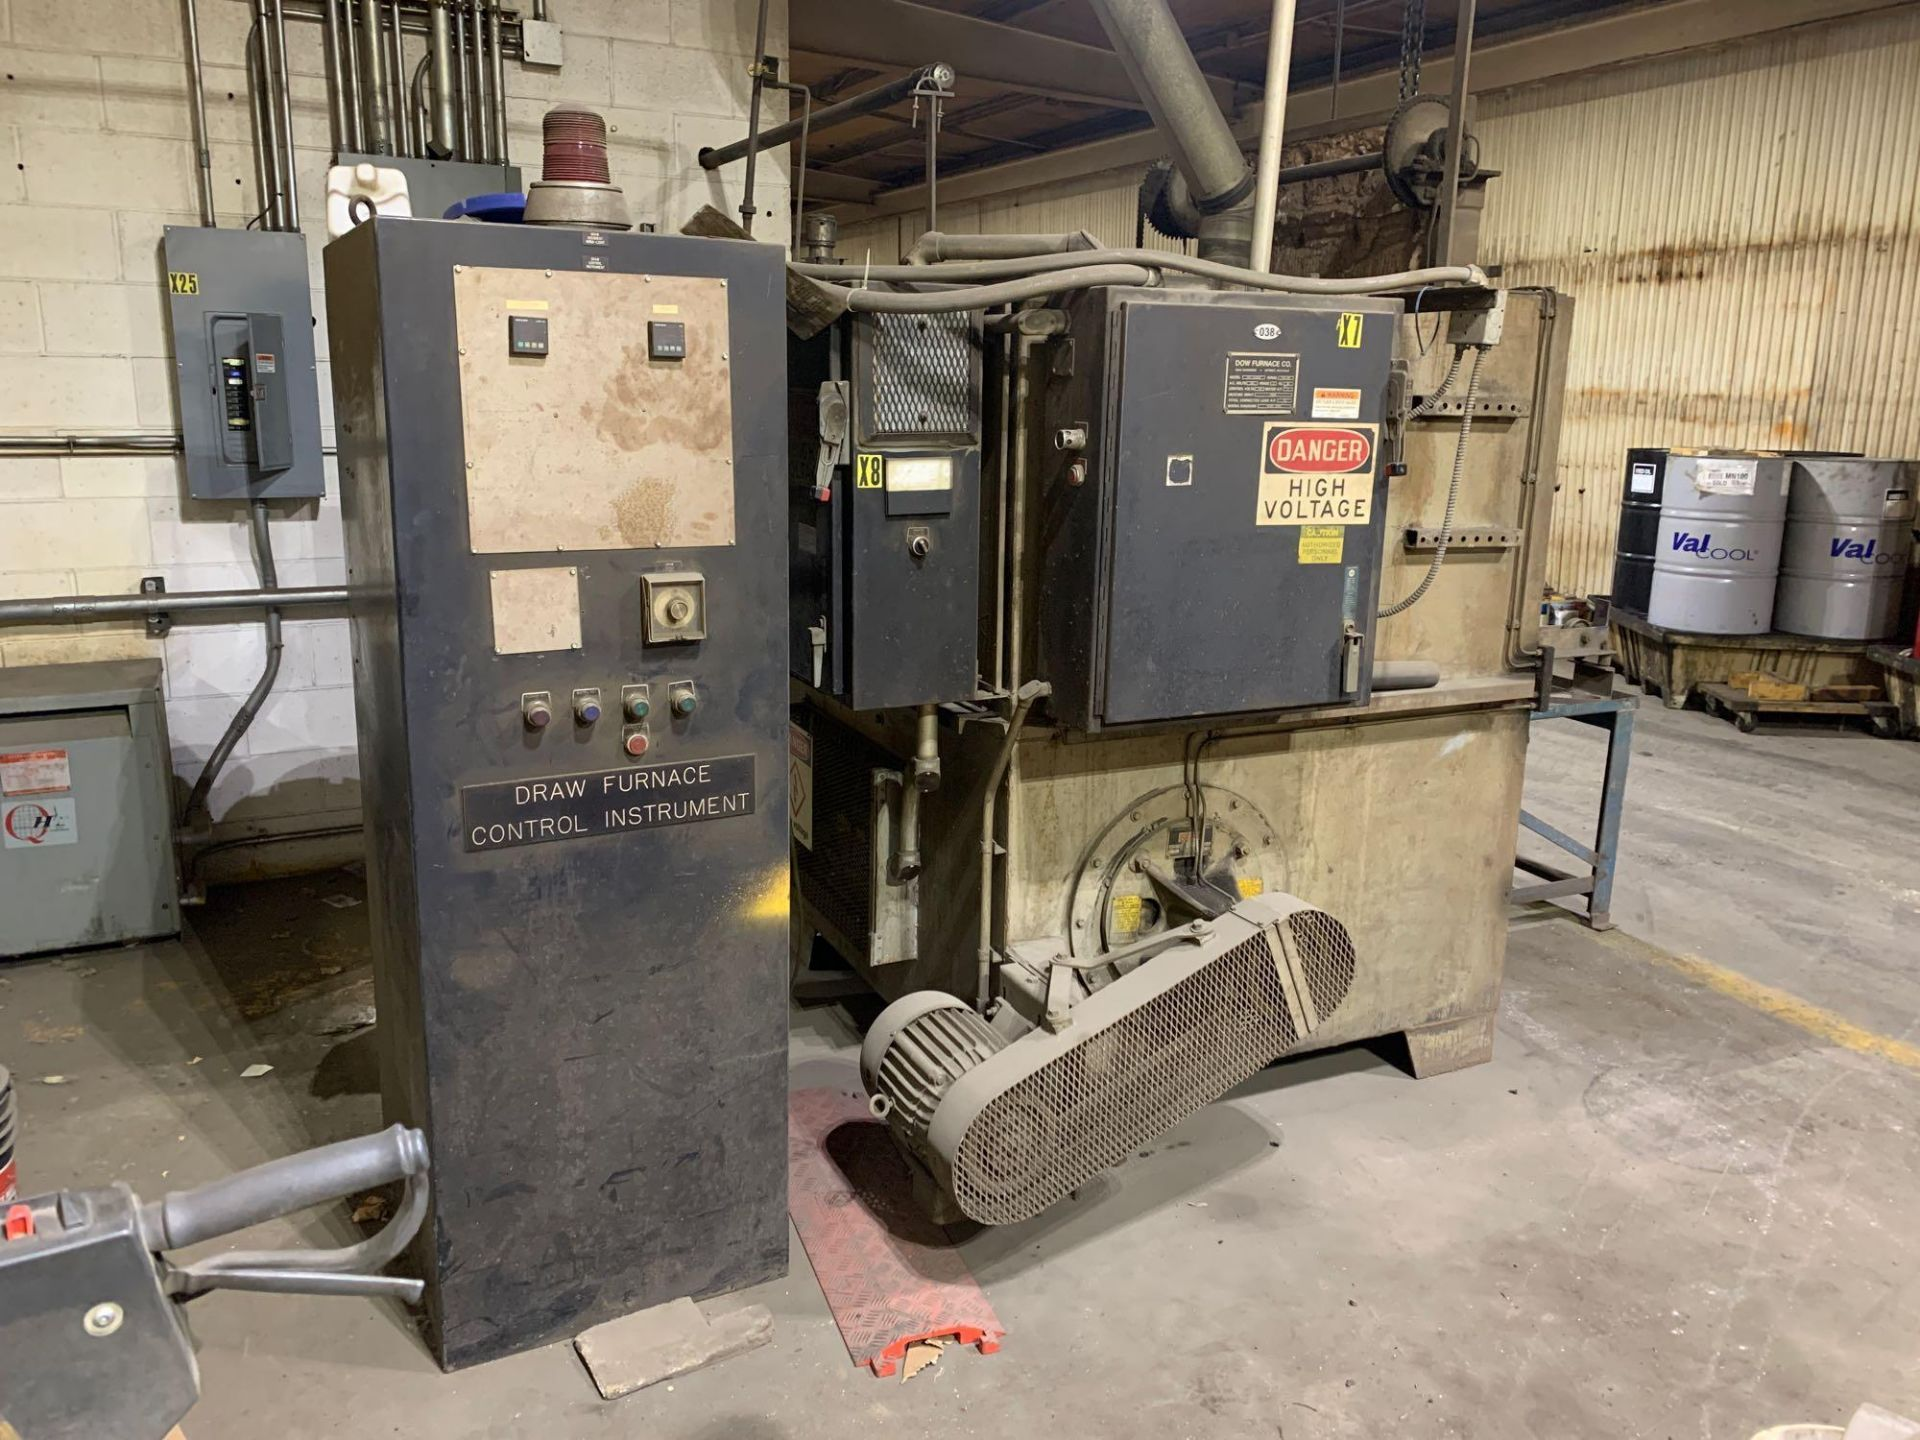 Dow Furnace Co. Electric Draw Furnace Seller States It Will Do At Least 1200 Degrees Model Bxe-24362 - Image 4 of 21